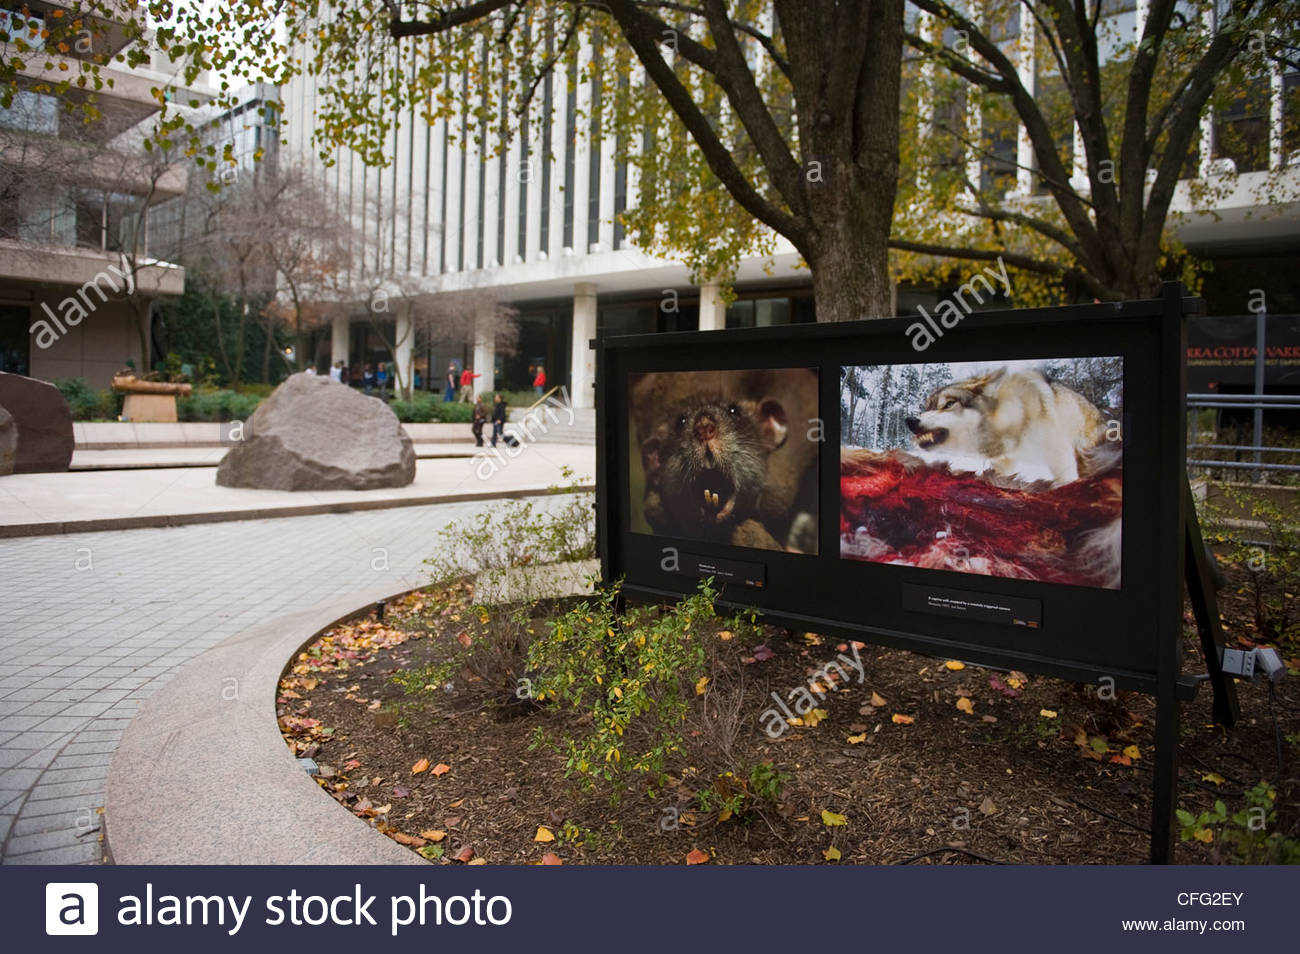 Outside the headquarters of the National Geographic Society. - Stock Image